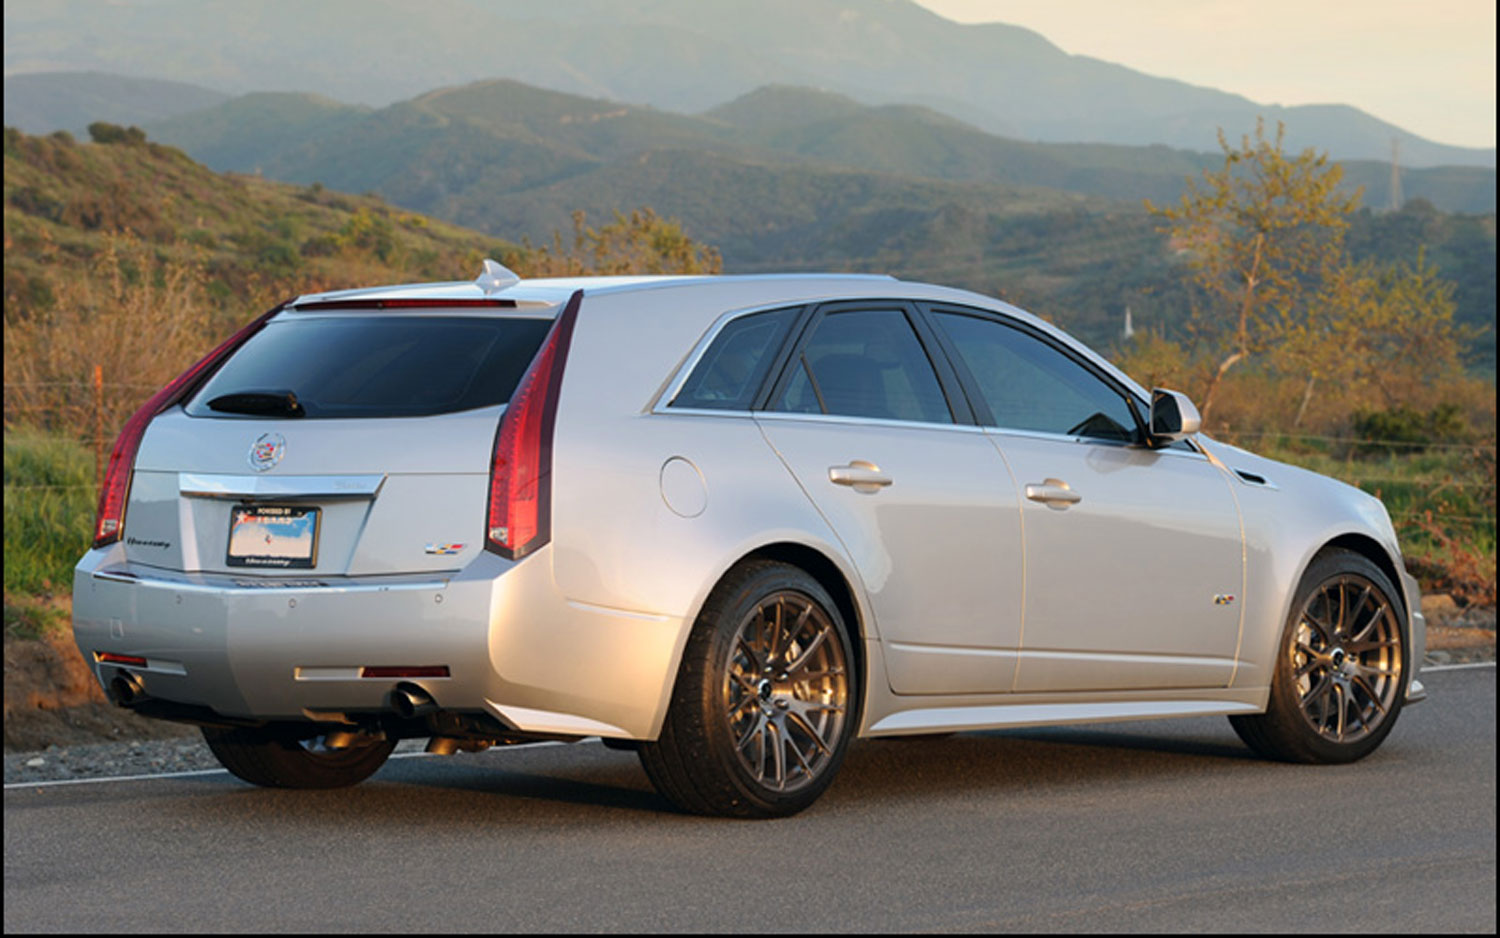 Cadillac Cts V Wagon For Sale 2 >> Video Find Hennessey Cadillac Cts V Wagon Volume Goes To 11 Motor